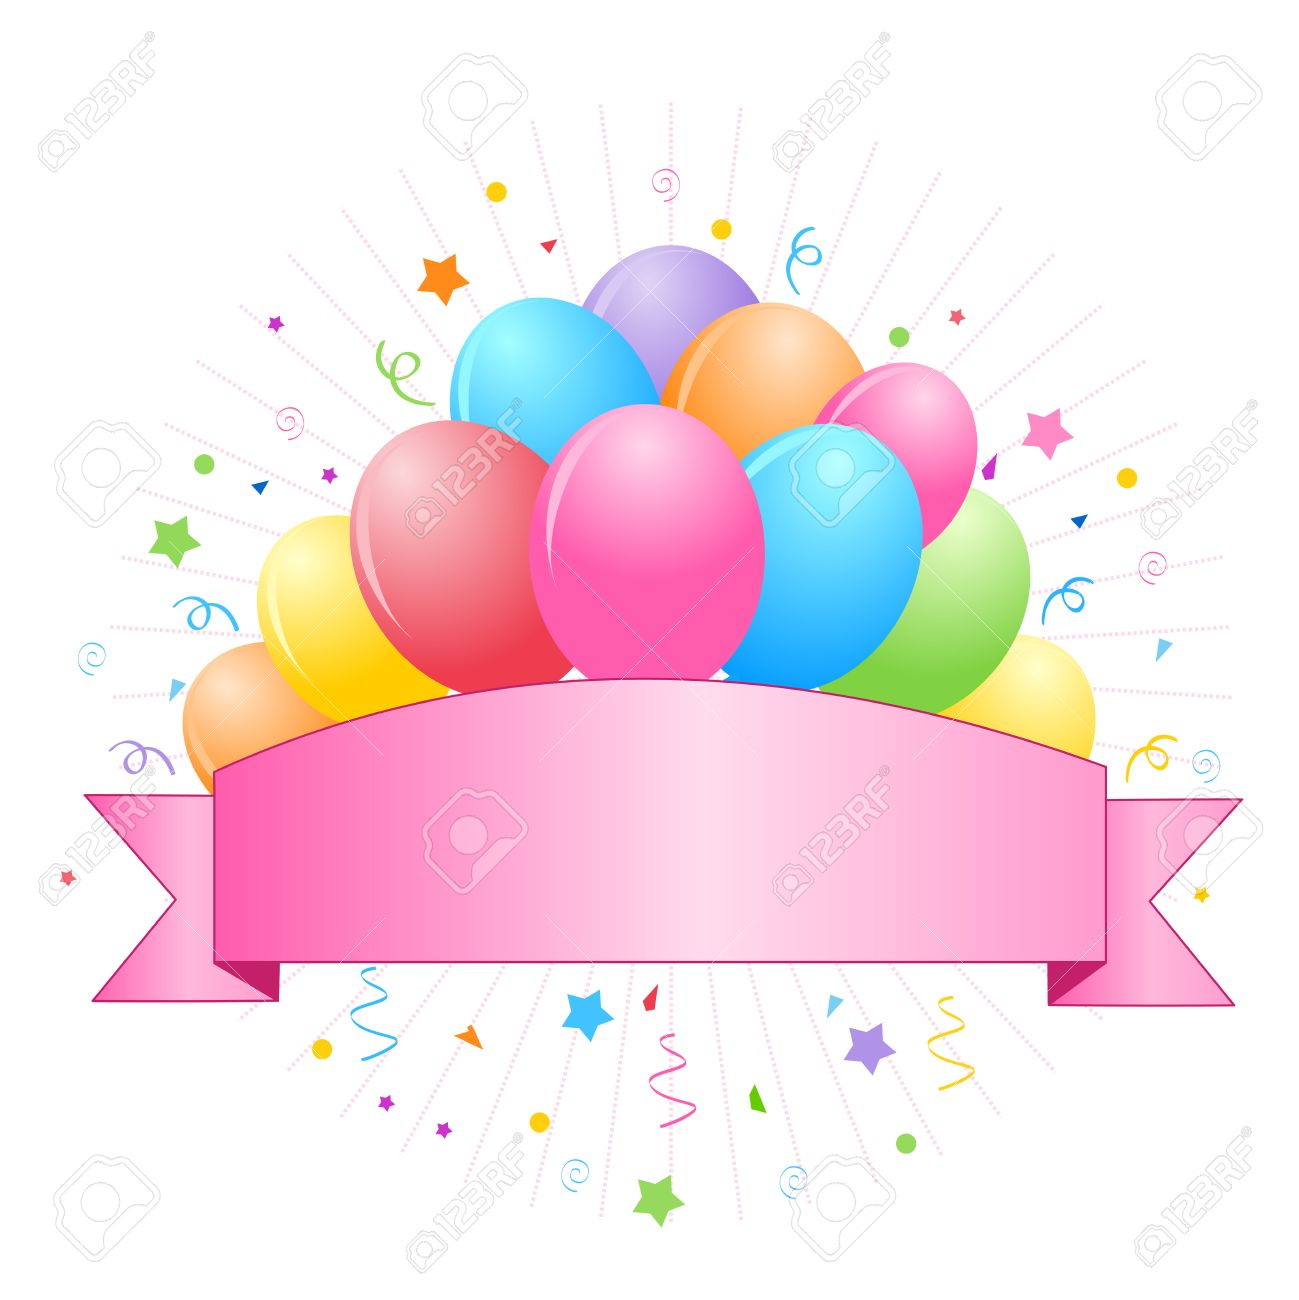 Bunch of colorful balloons with cute banner and confetti clipart...